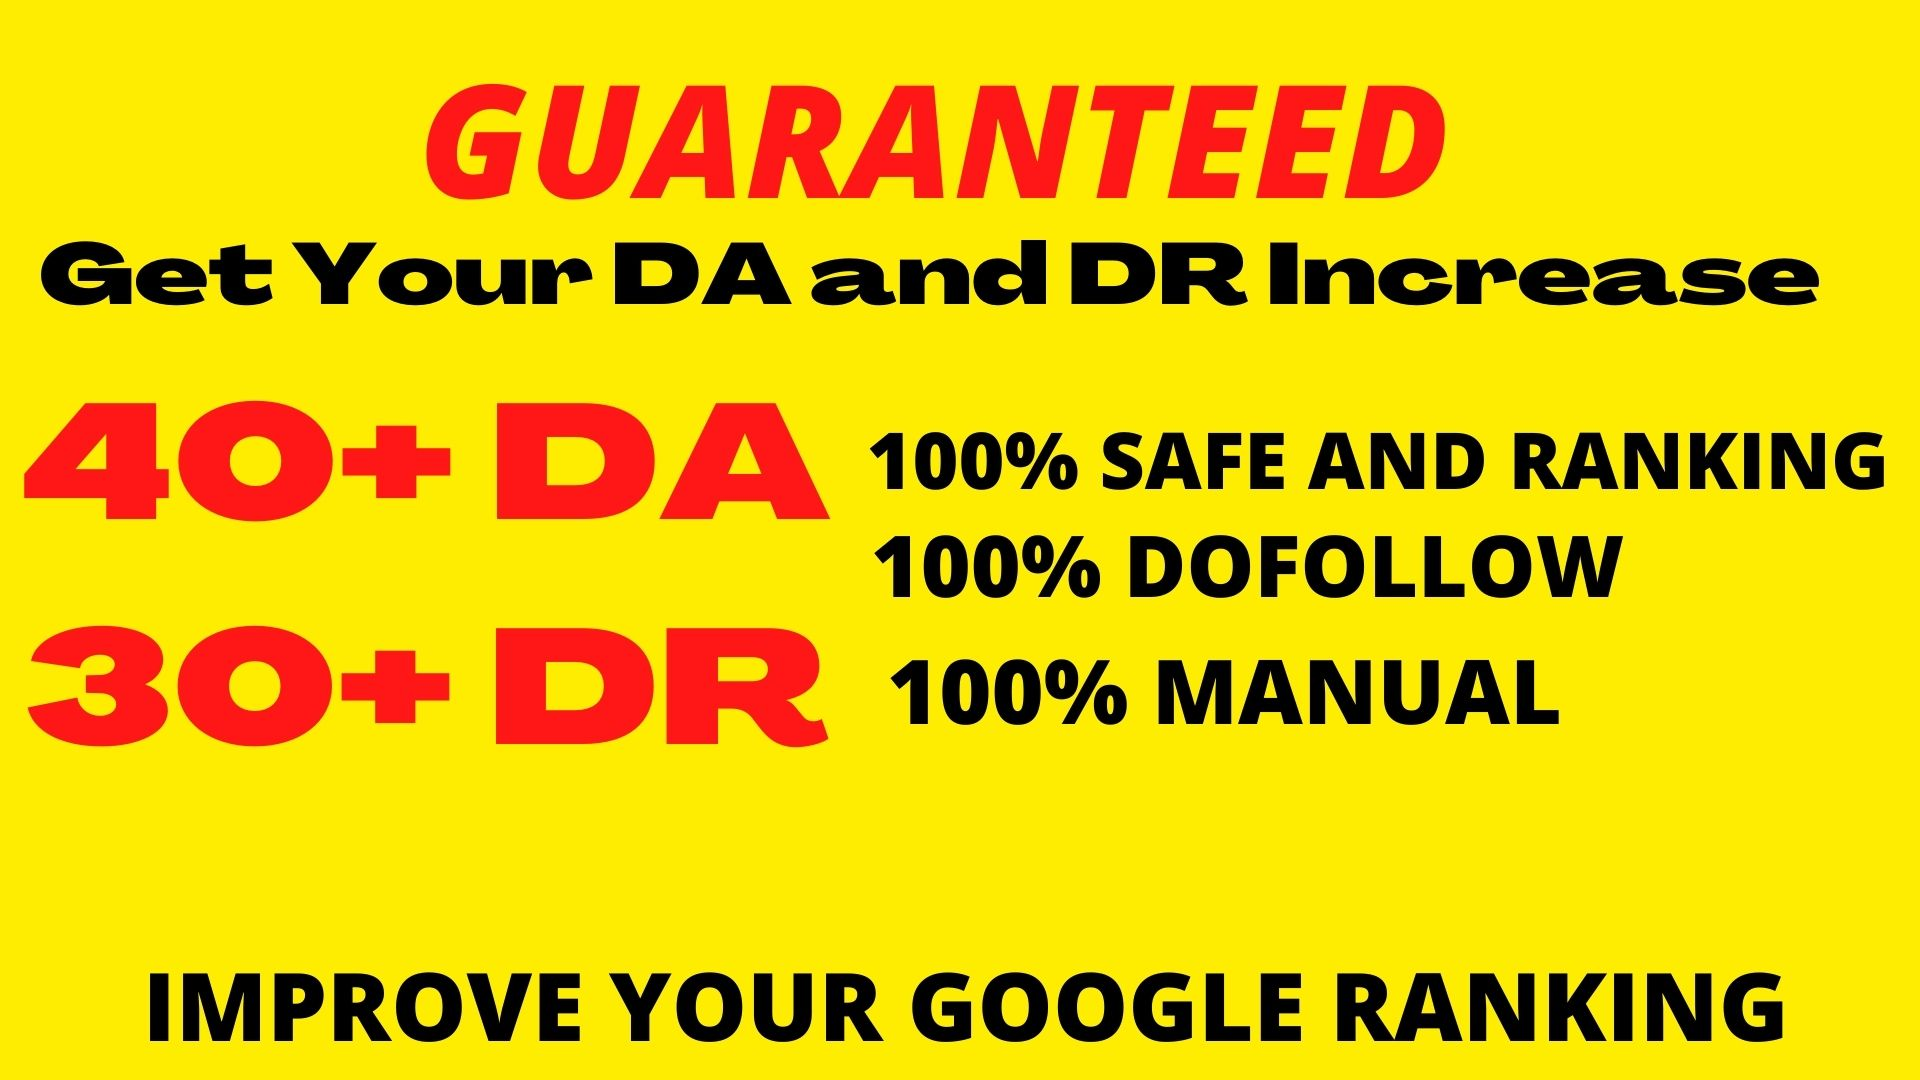 Manually Create 30+DOFOLLOW High PR 1-PR 7+ or DA-40+Highly Authorized Google Dominating Backlinks